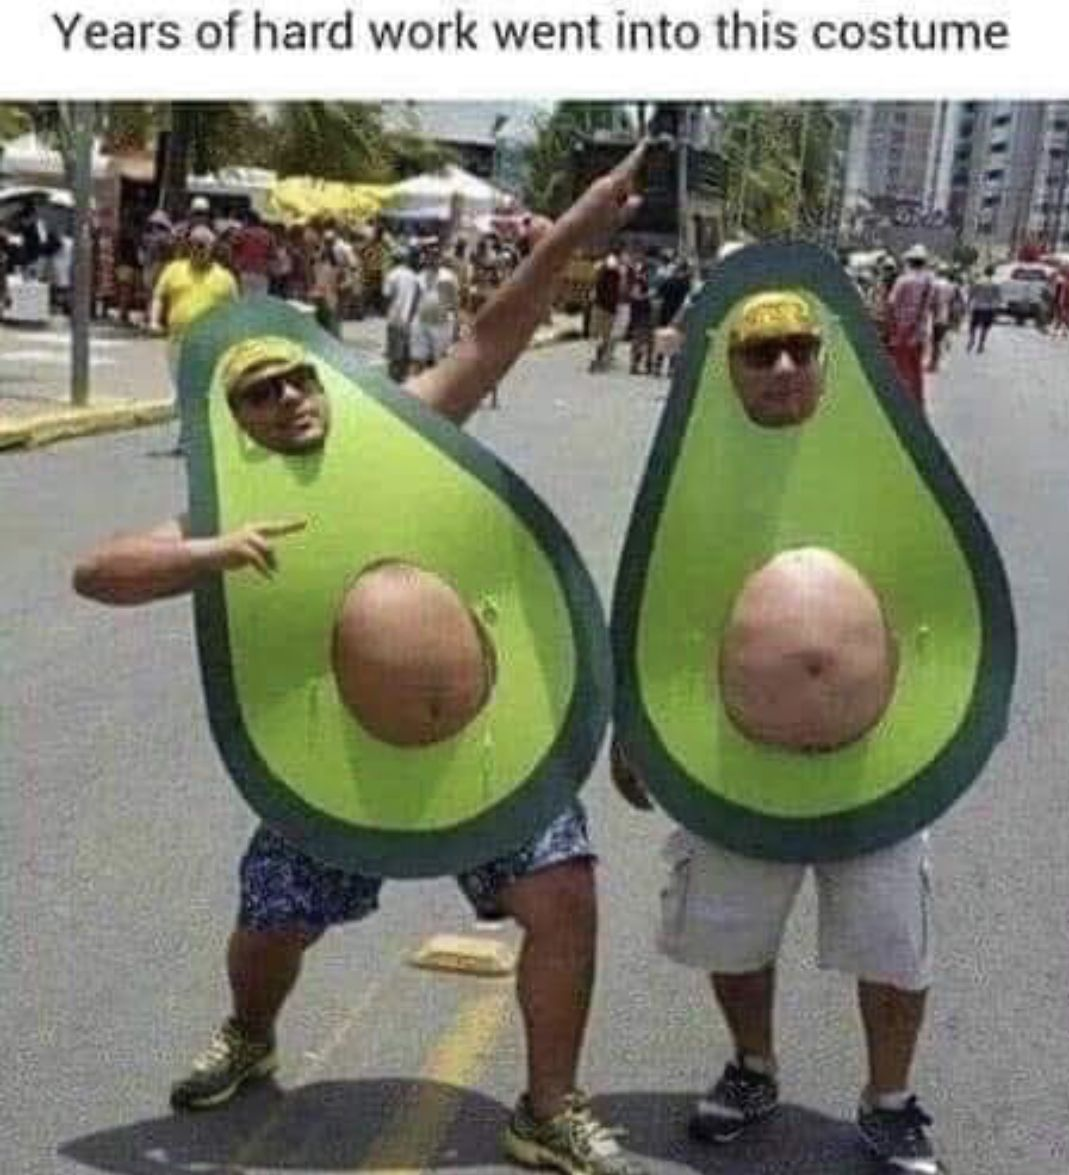 Pin By Grace Lee On Halloween Funny Pictures Avocado Costume Halloween Costumes